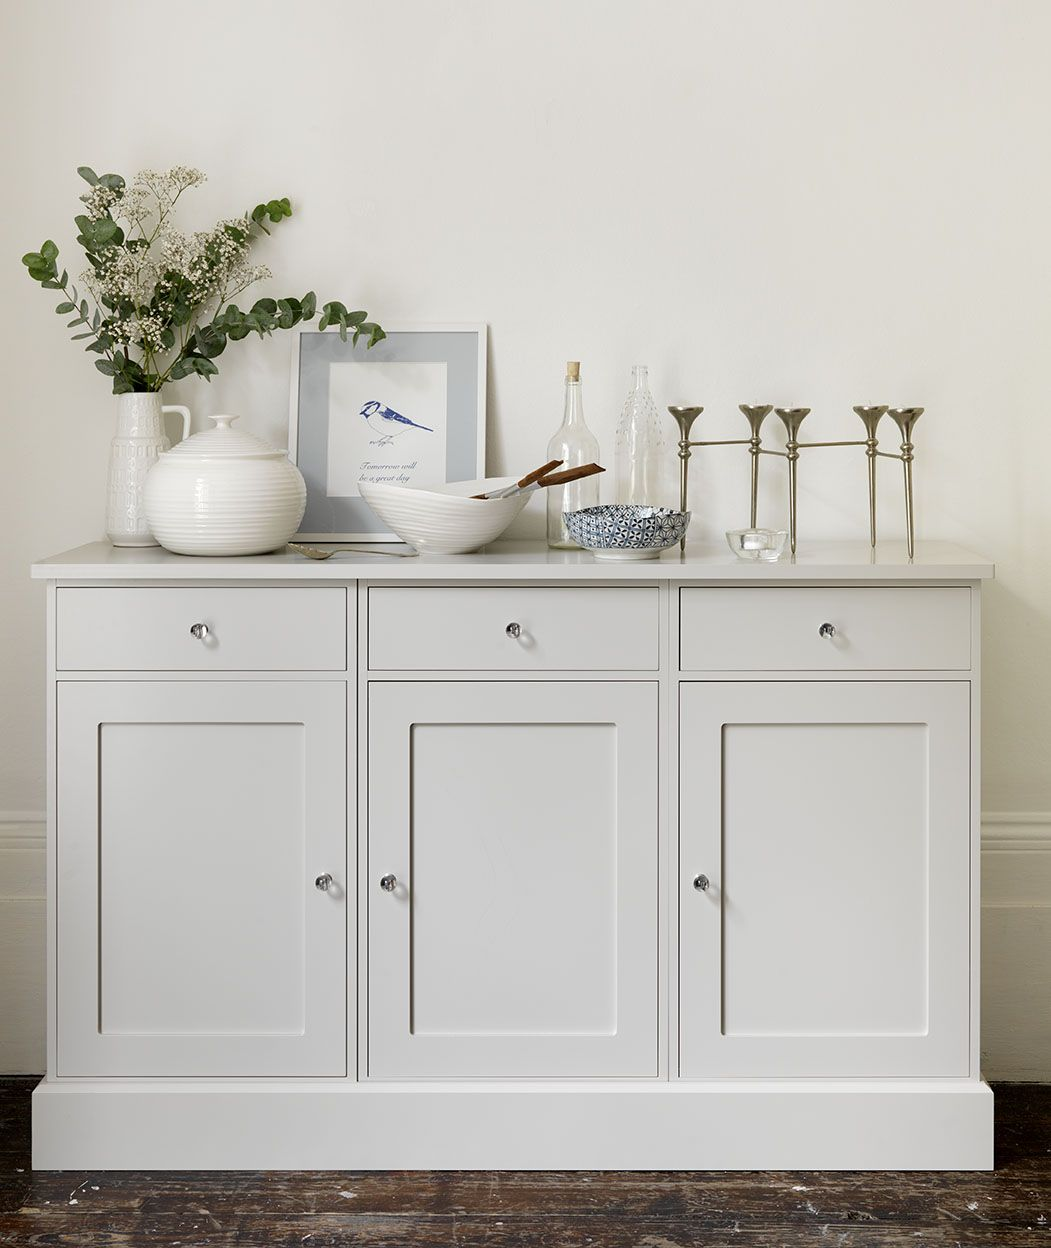 Exceptional #thedormyhouse New Hampshire Triple Base Cupboard The Dormy House.  Distressed FurnitureBedroom ...